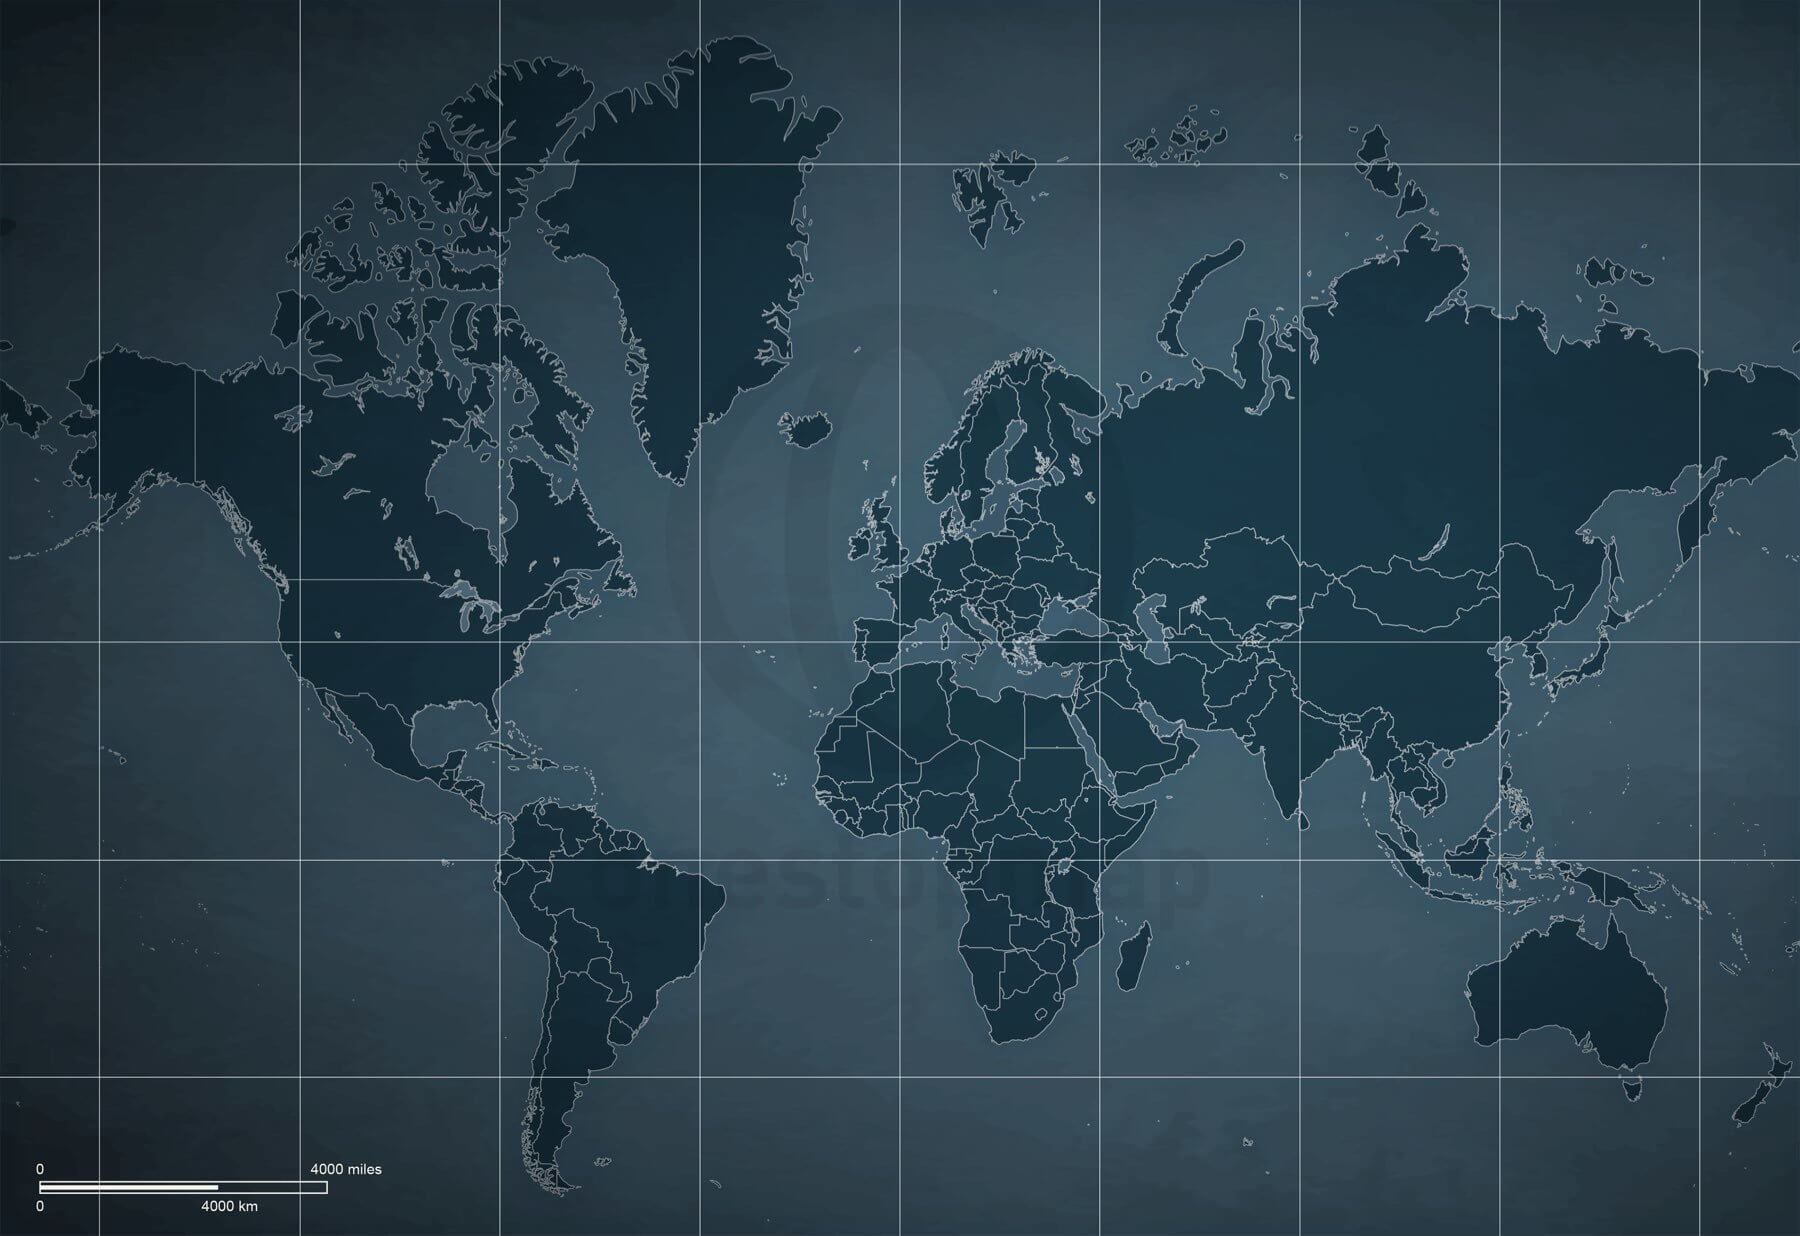 Digital Map Of The World.Digital World Maps Sci Fi Map Style One Stop Map